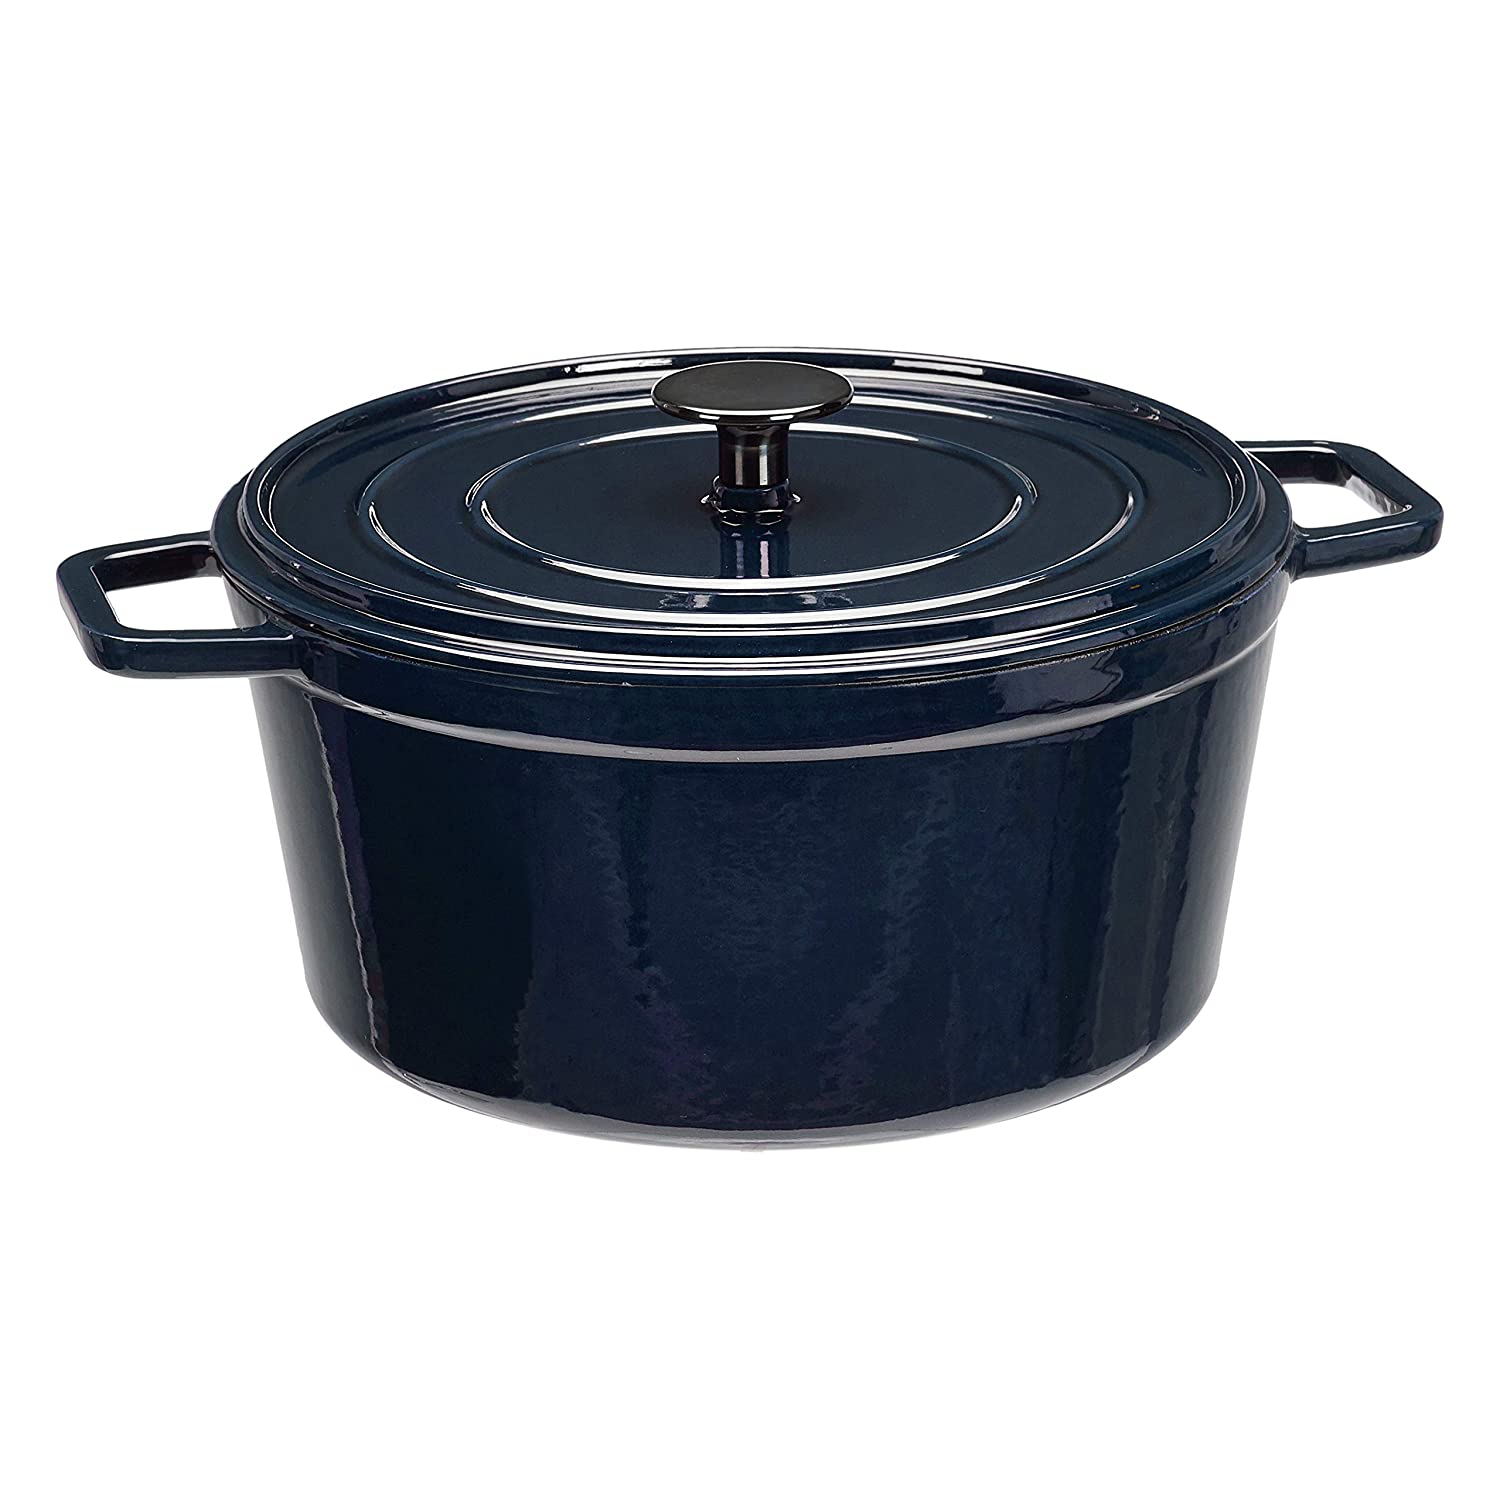 AmazonBasics Premium Enameled Cast Iron Dutch Oven, 5-Quart, Deep Blue